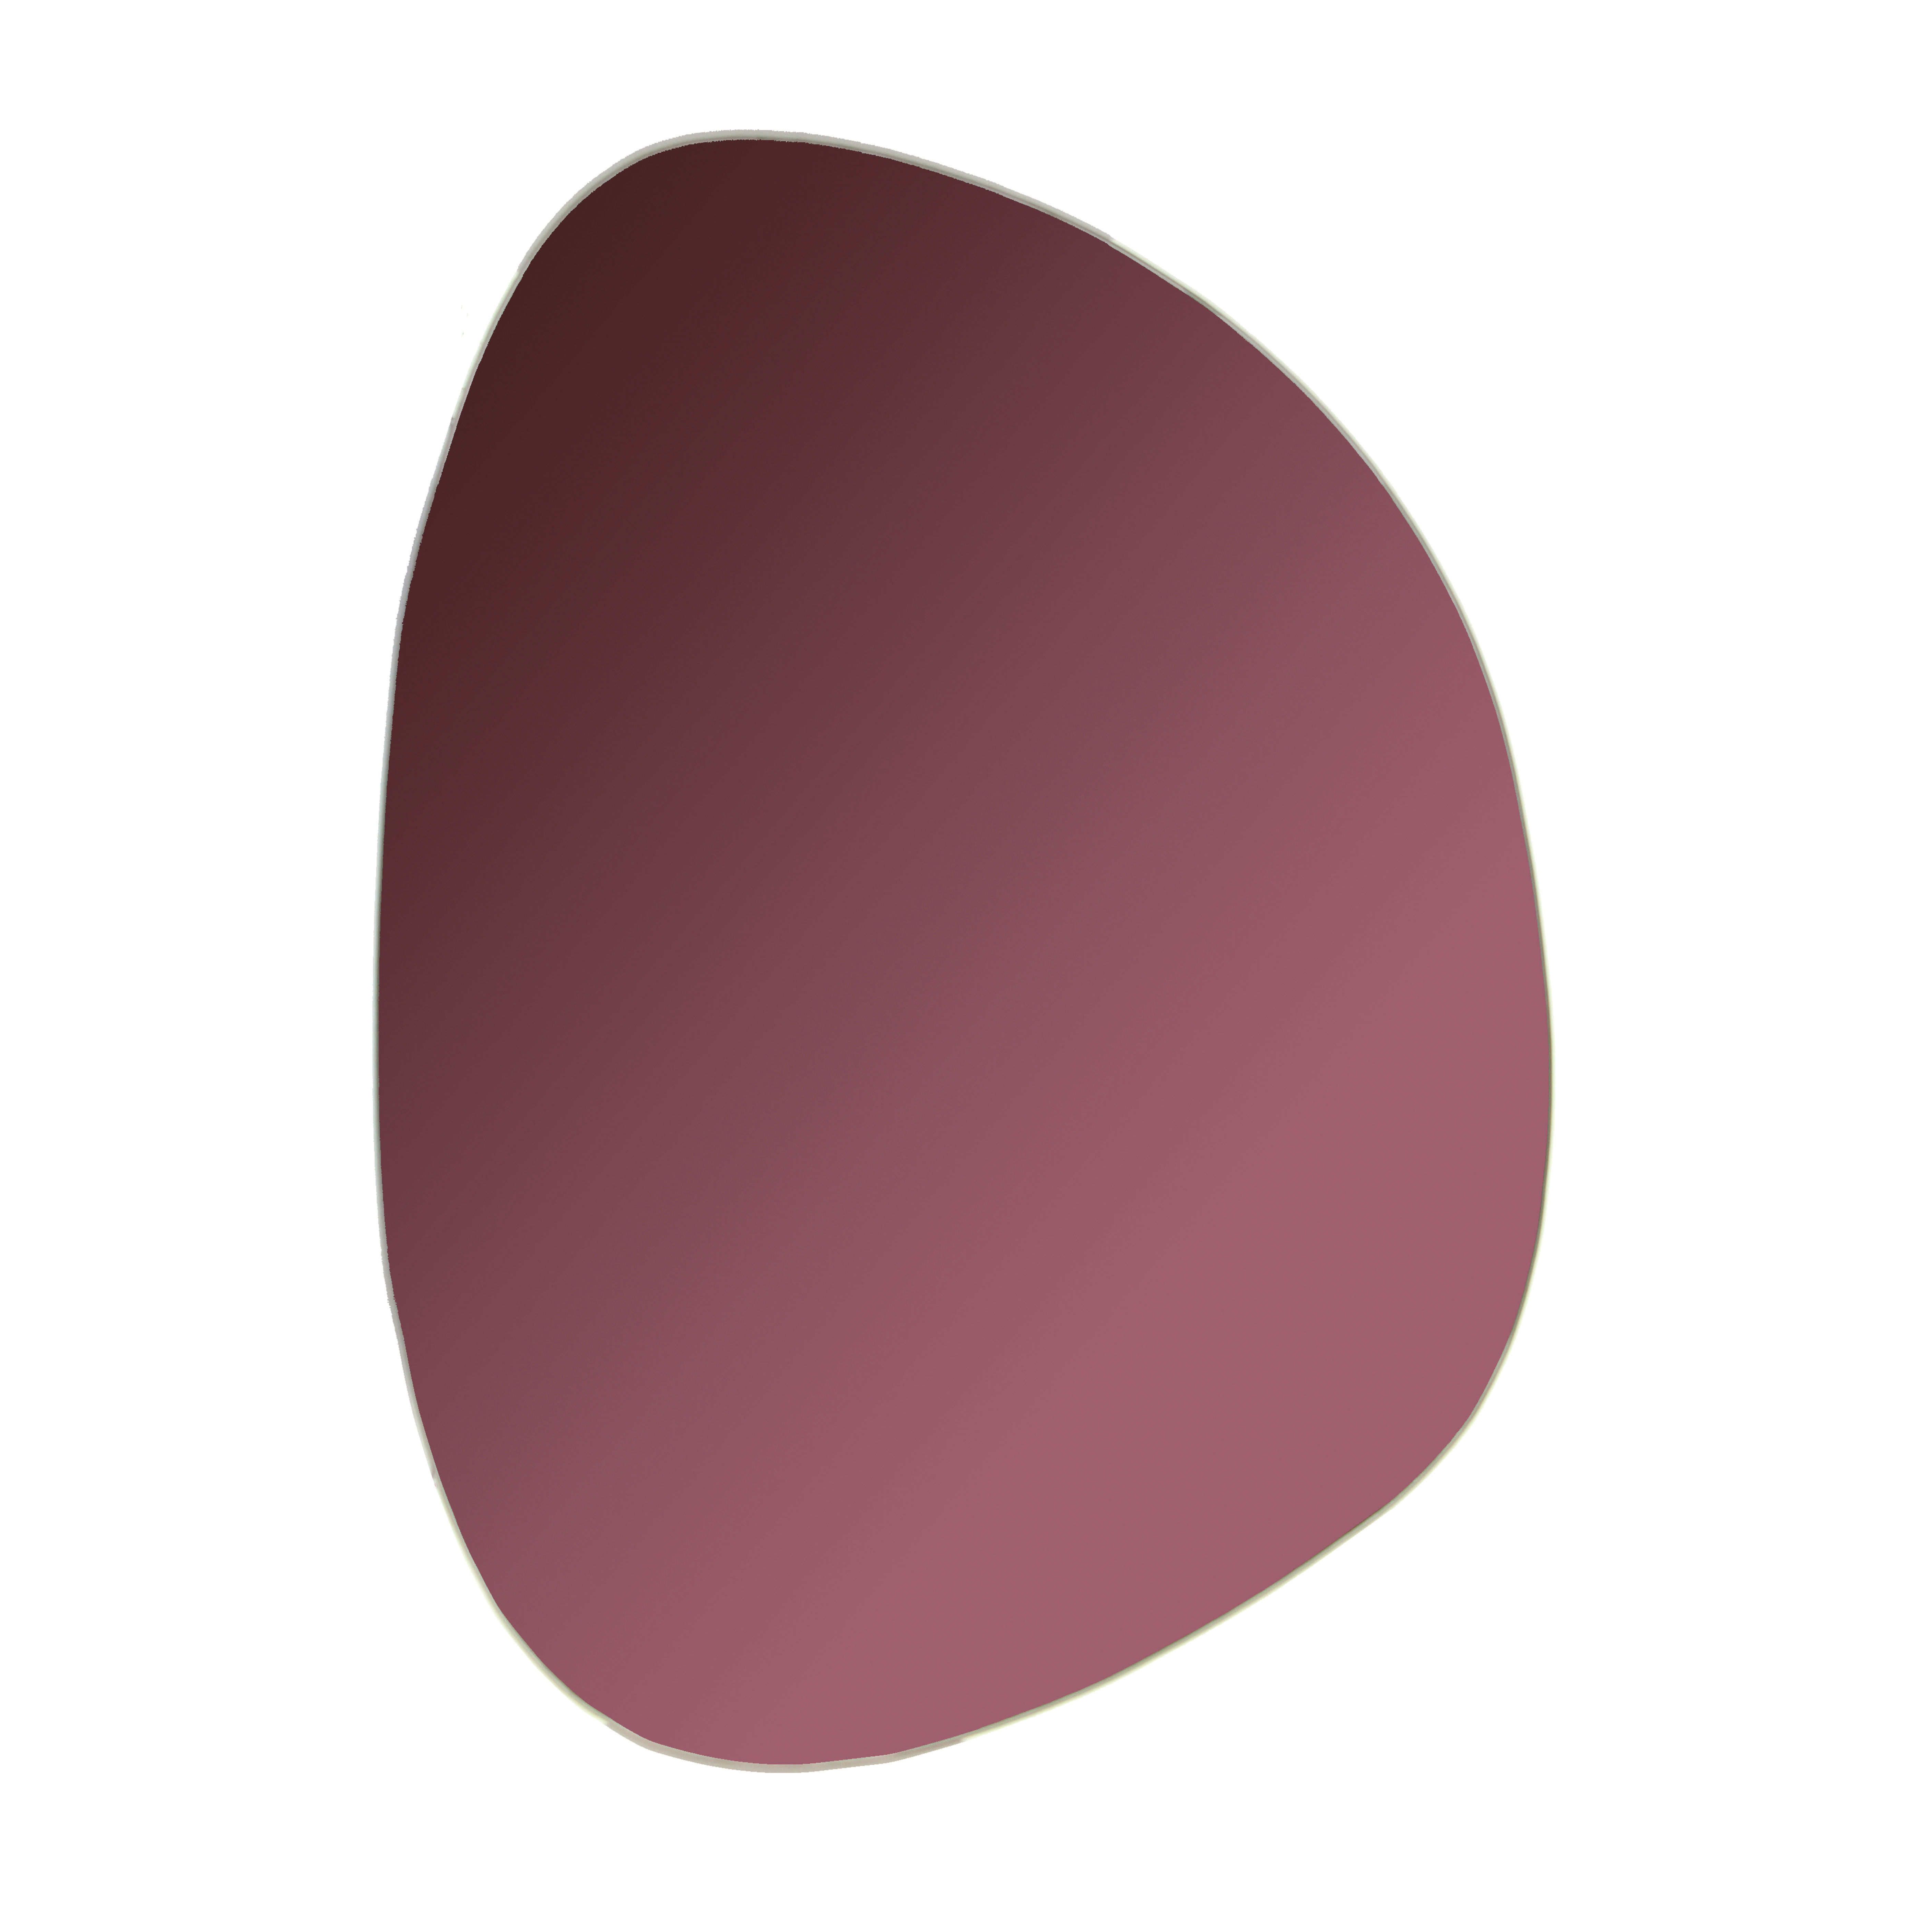 Decoration - Mirrors - Pebble Wall mirror - / 37 x 26.5cm by & klevering - Purple - Coloured glass